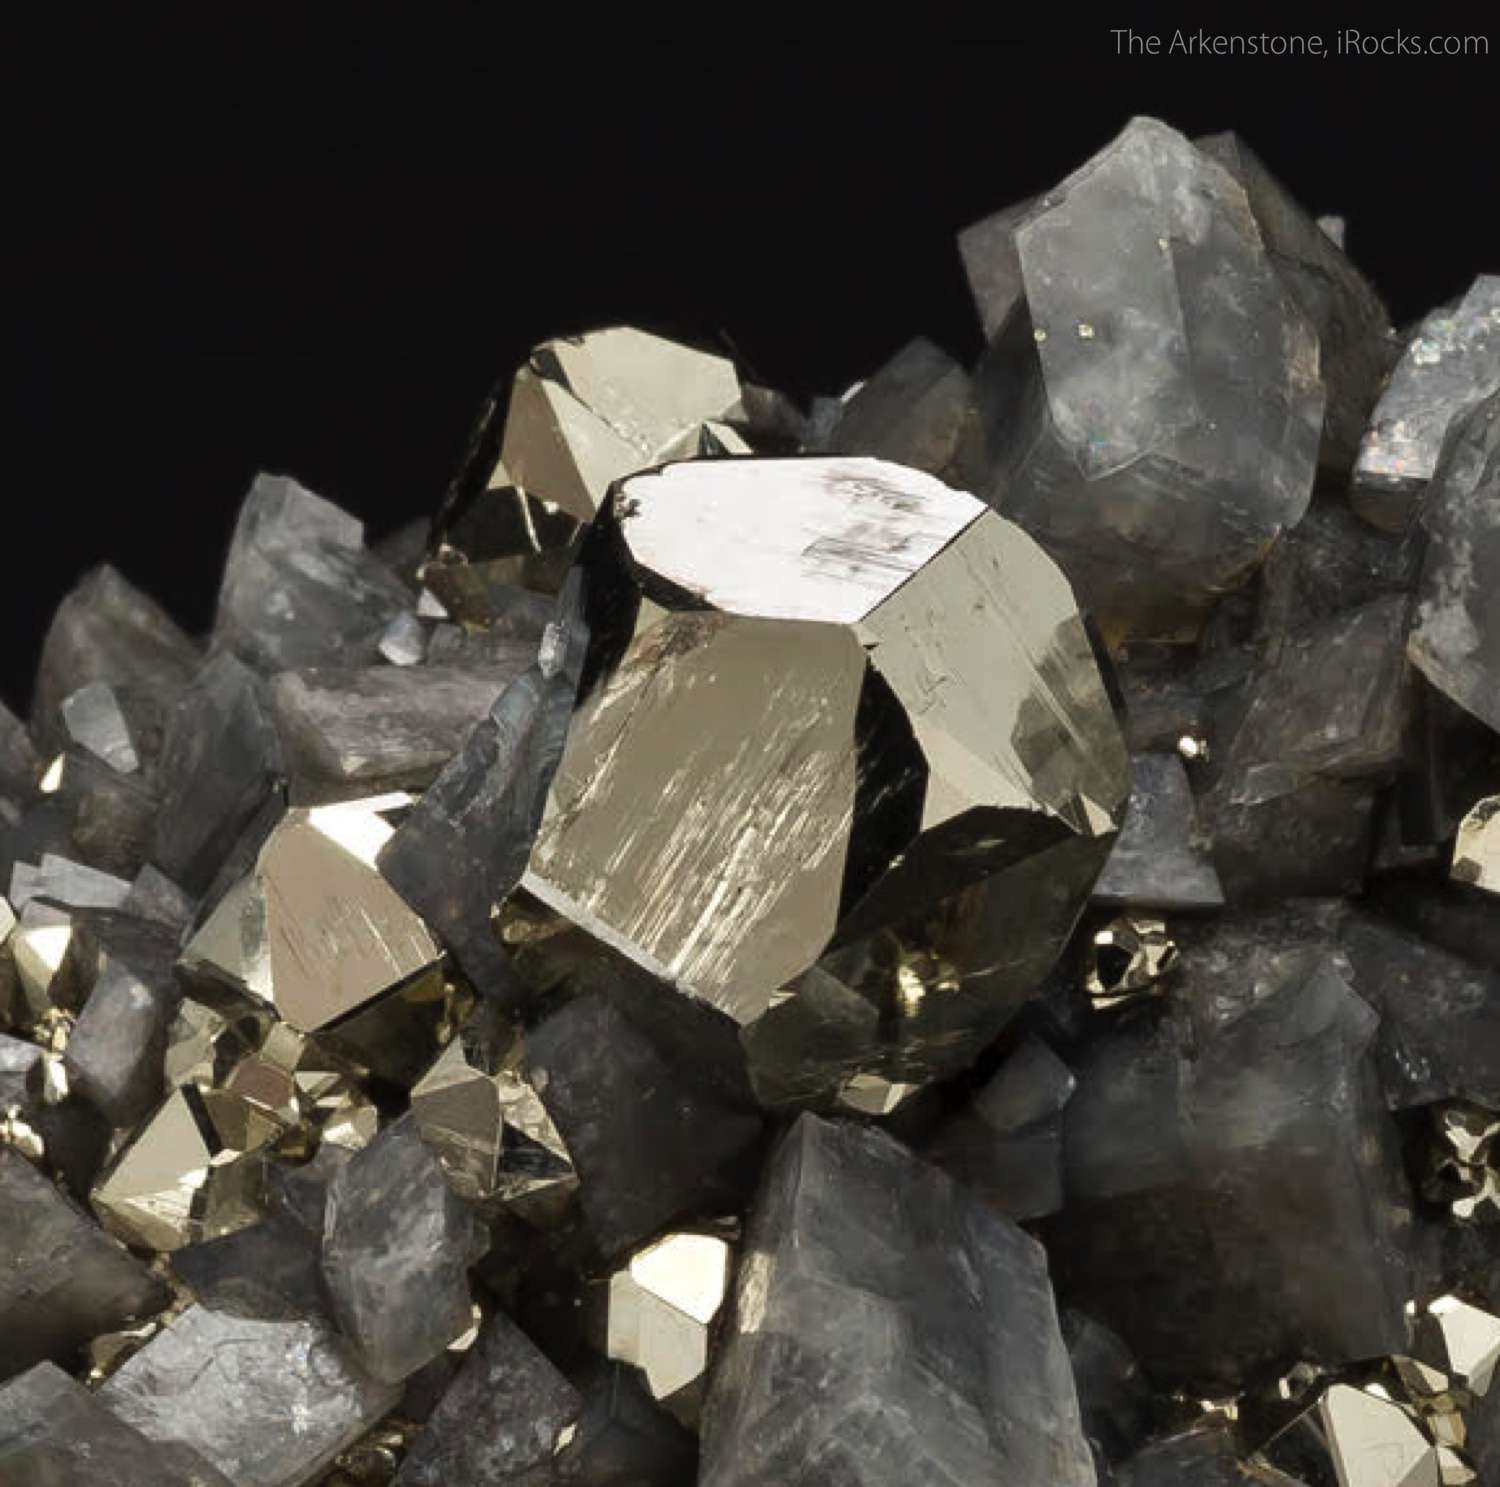 These pyrites incredible luster sharp crystal habit turned early 2014